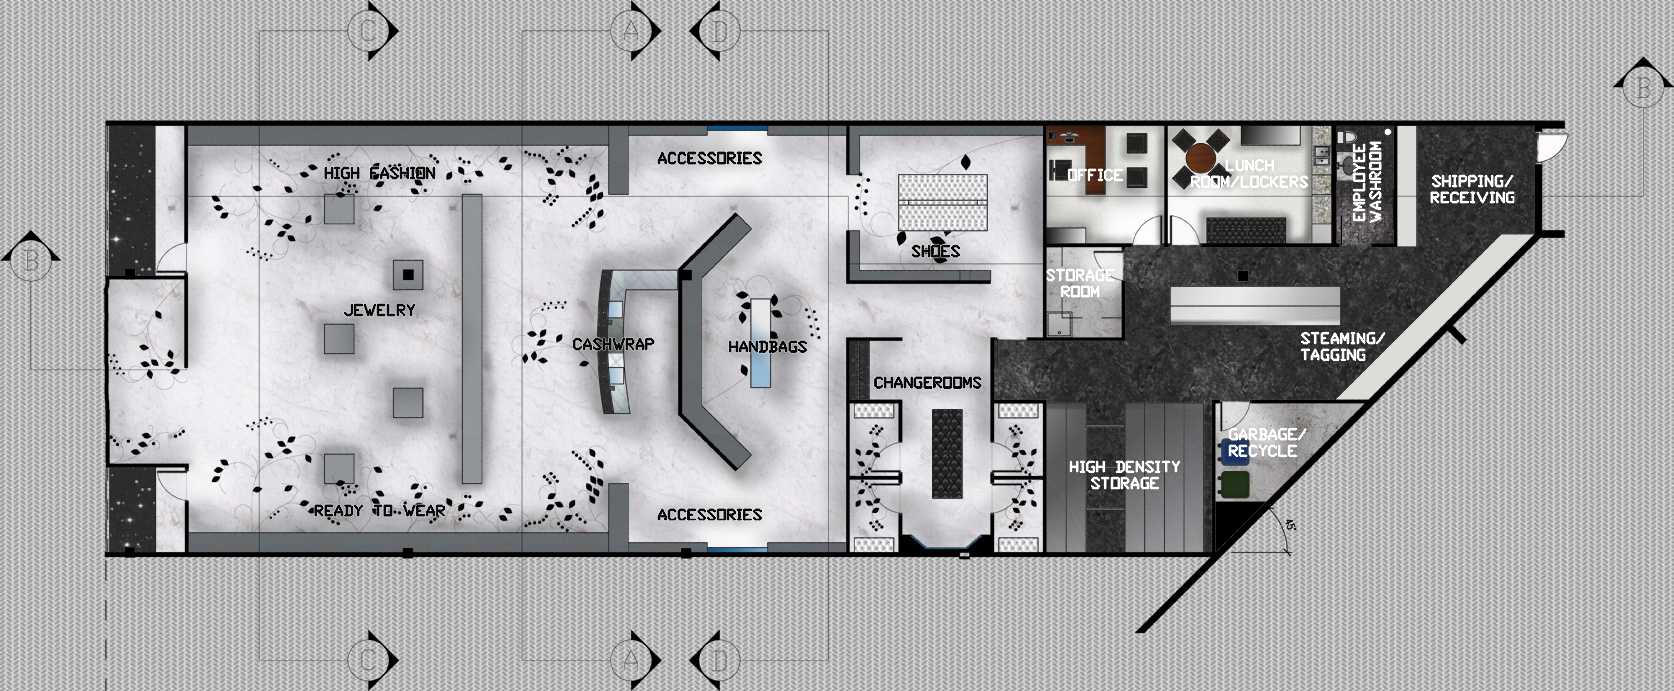 floor plan programs house plans awesome floor plan programs 1 floor plan rendered jpg